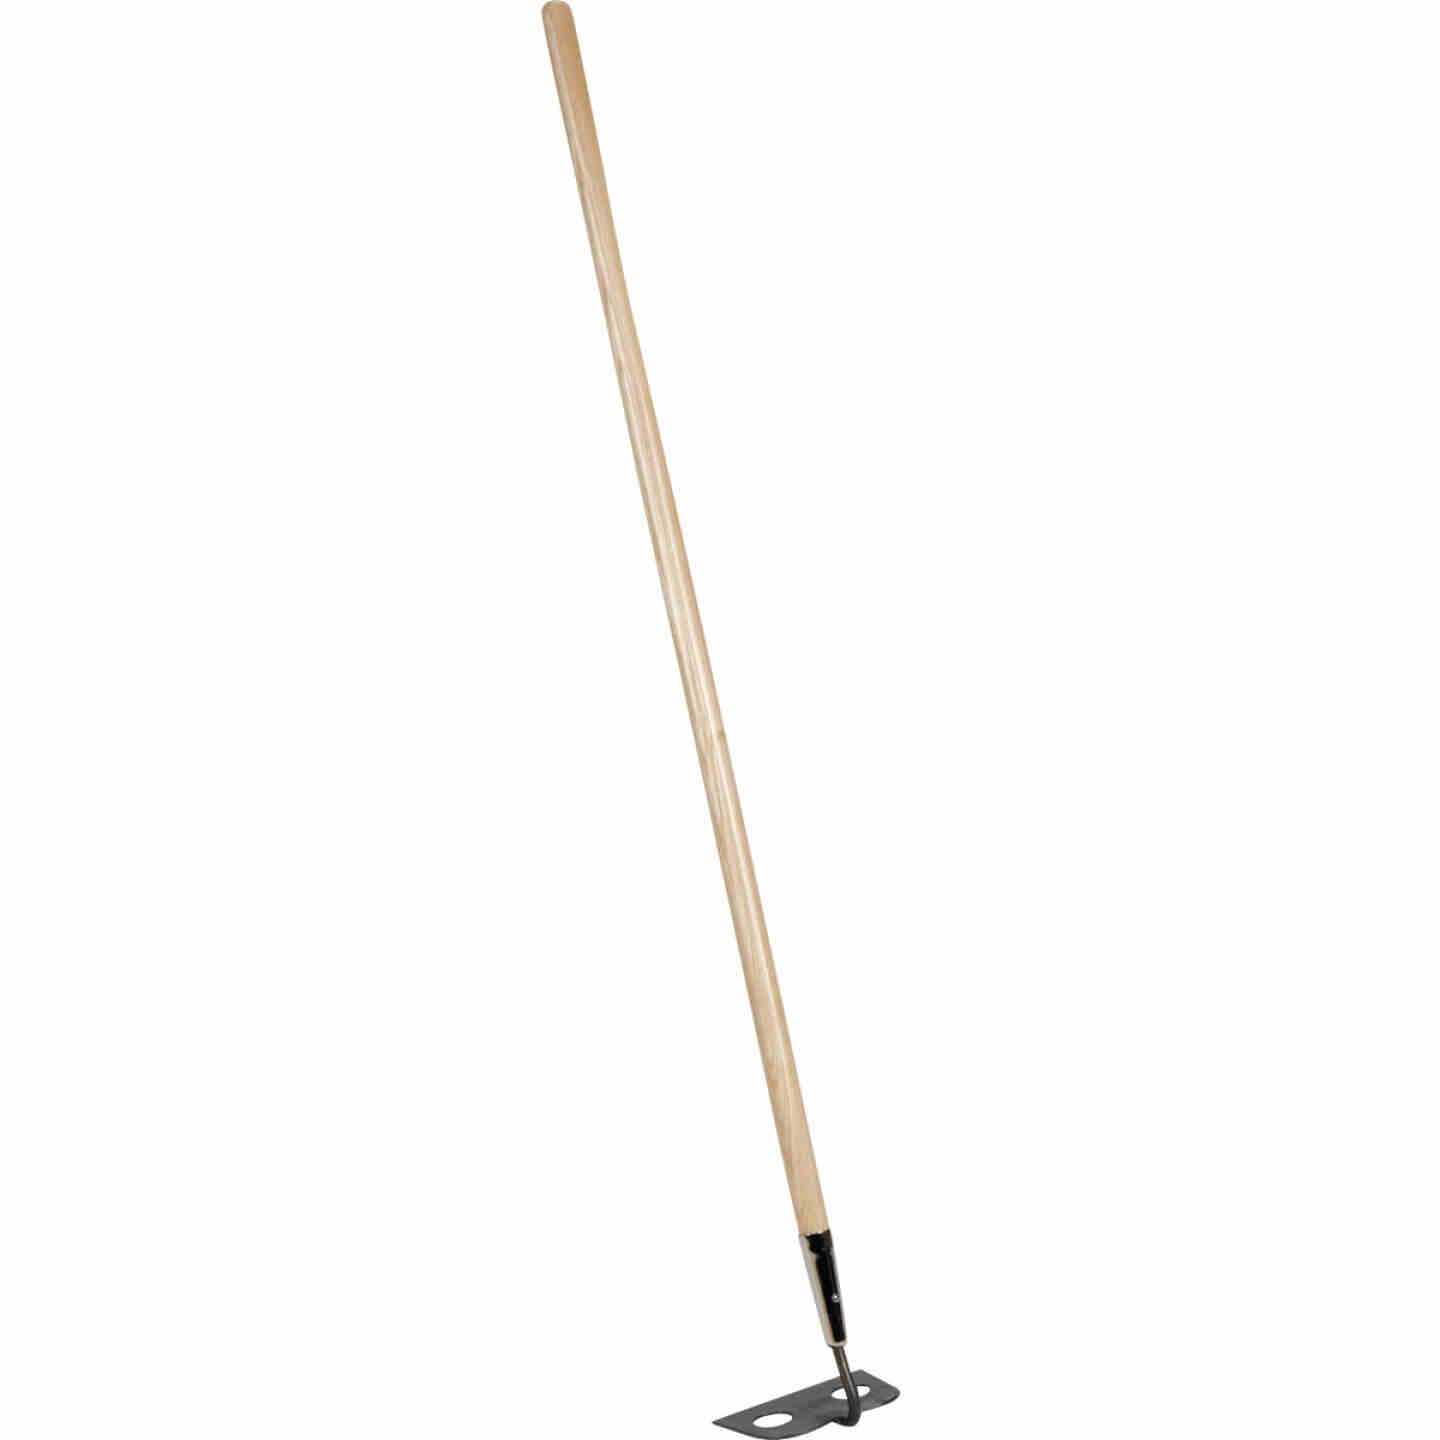 Do it Best 51 In. Wood Long Handle Forged Mortar Hoe Image 3